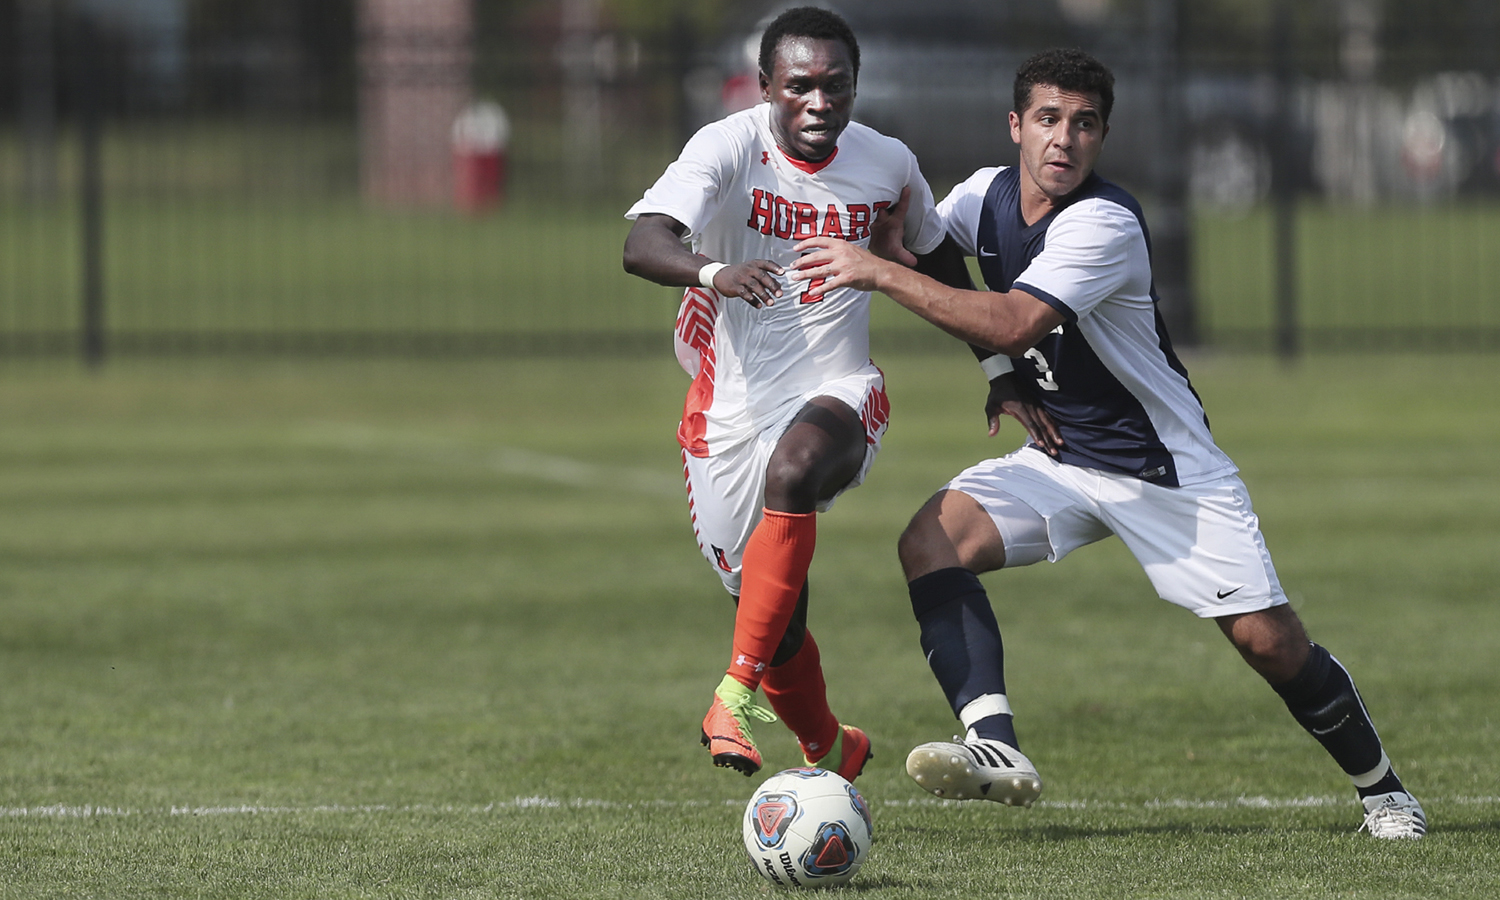 Binjo Emmanuel '20 moves the ball down the field during Hobart's 1-0 win over the SUNY Geneseo.